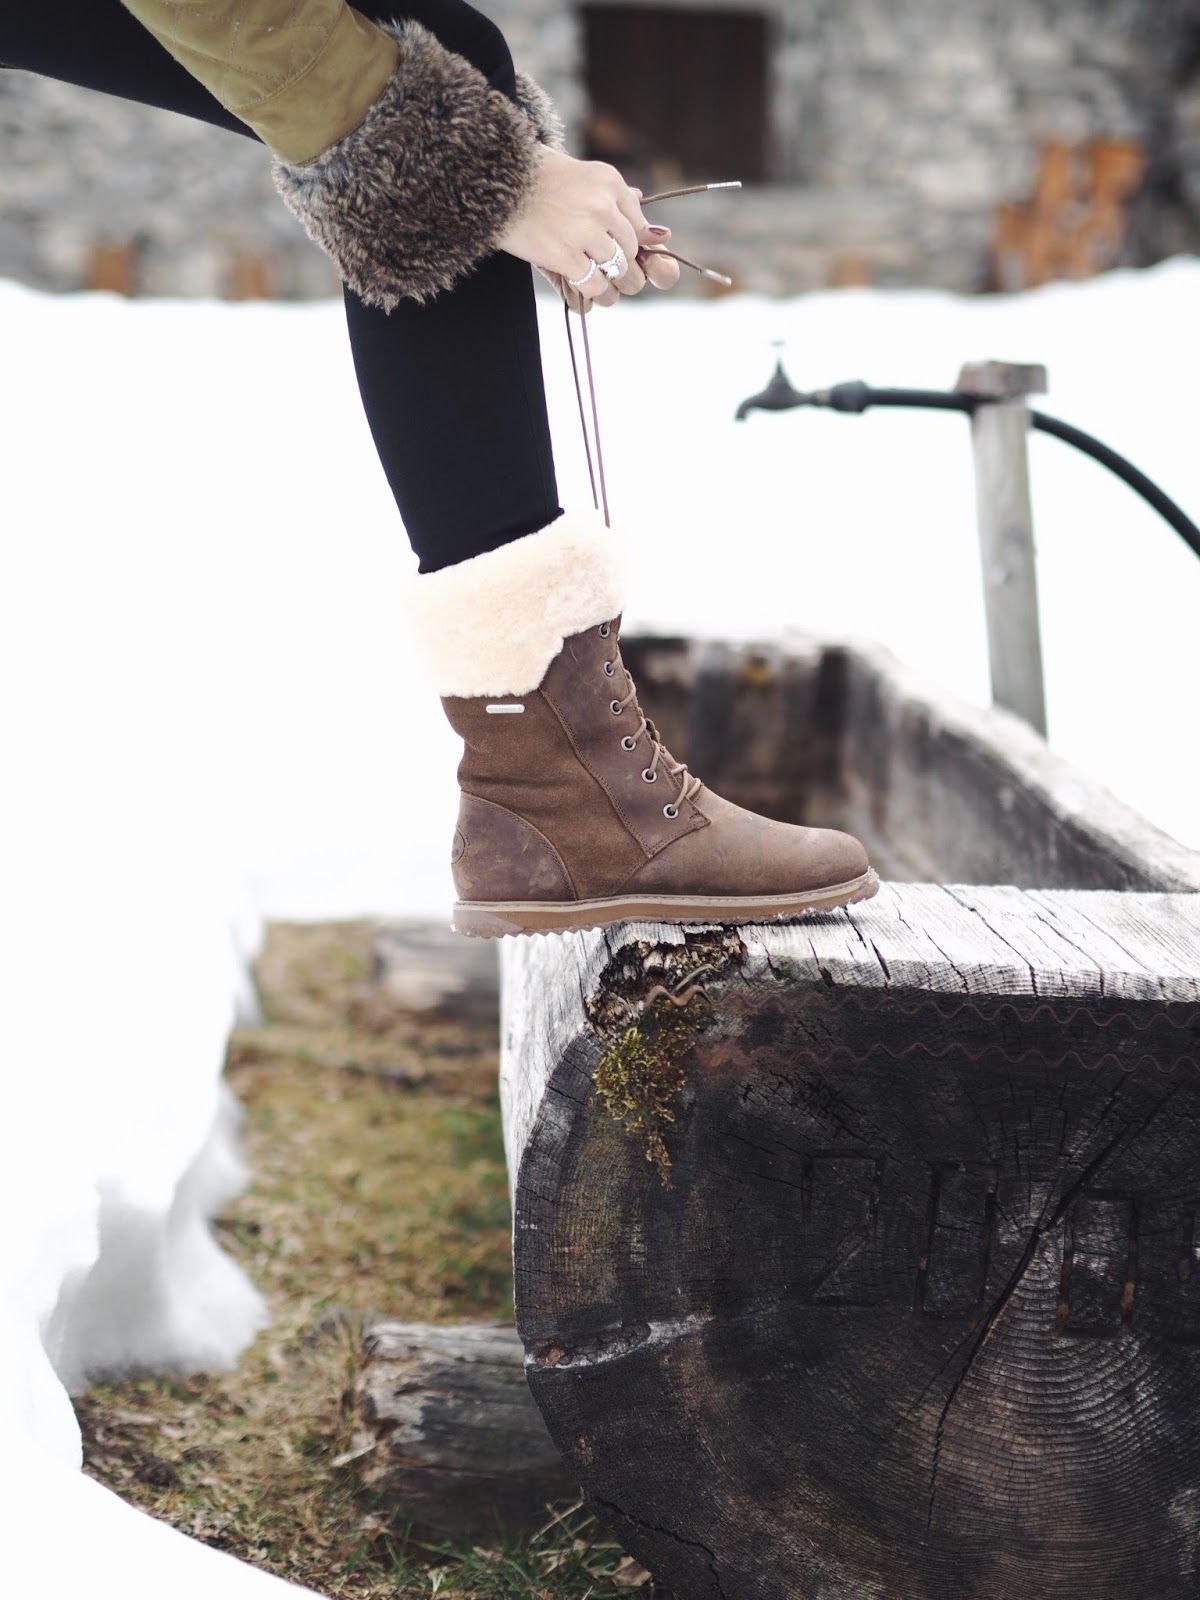 FASHION: EMU'S IN THE SNOW - PRETTYCHICTHINGS